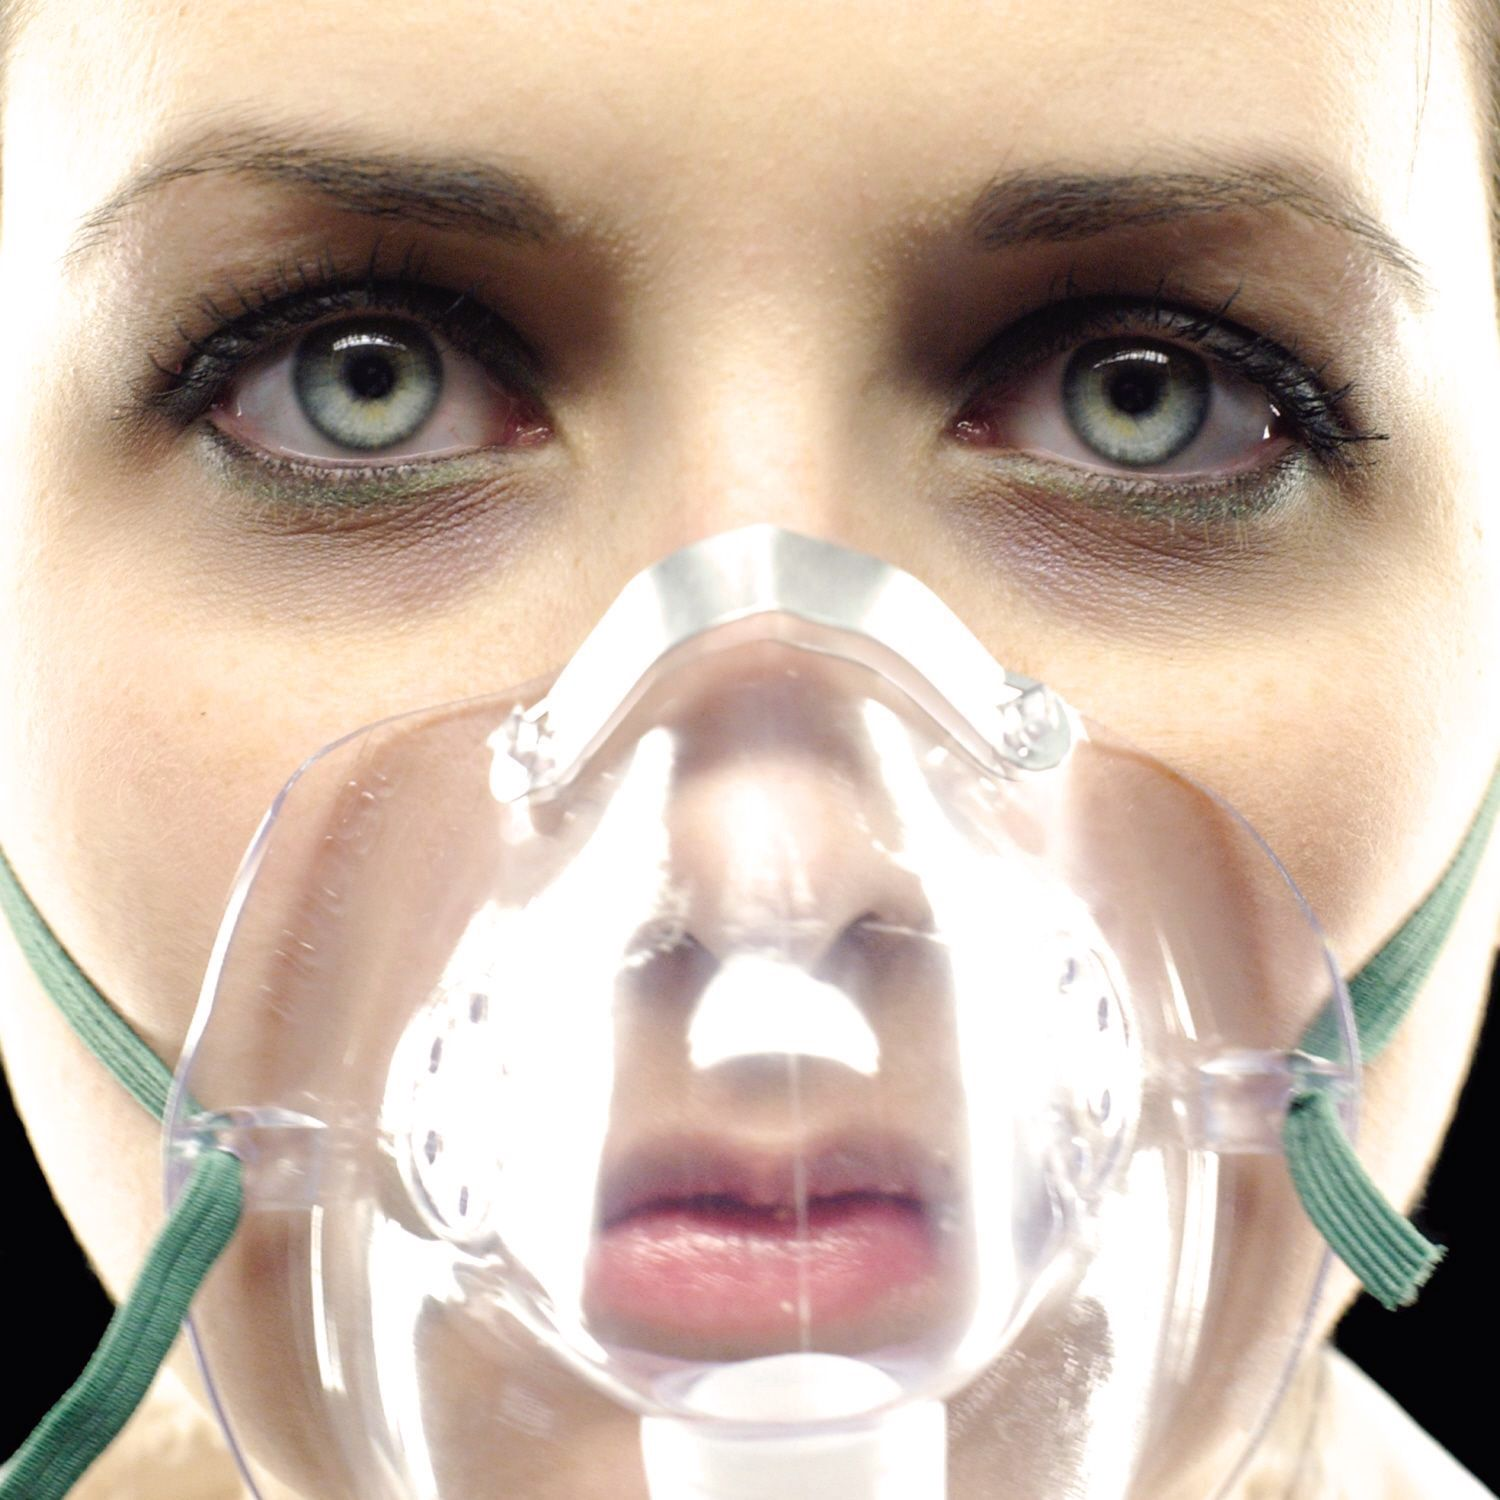 Underoath // They're Only Chasing Safety